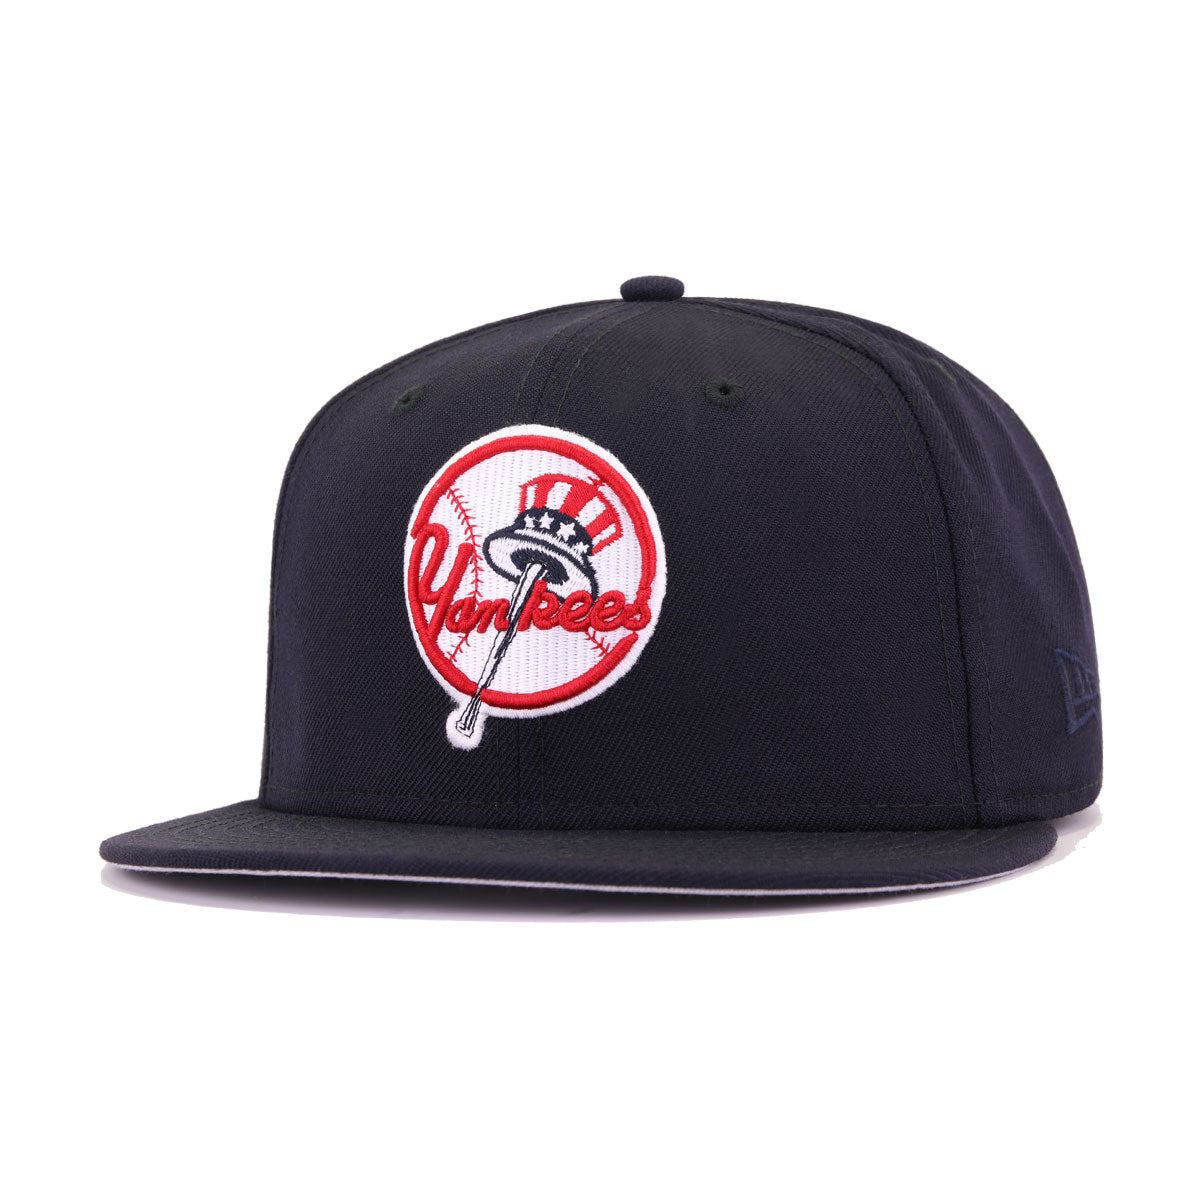 New York Yankees Navy 2009 Inaugural Season New Era 59Fifty Fitted